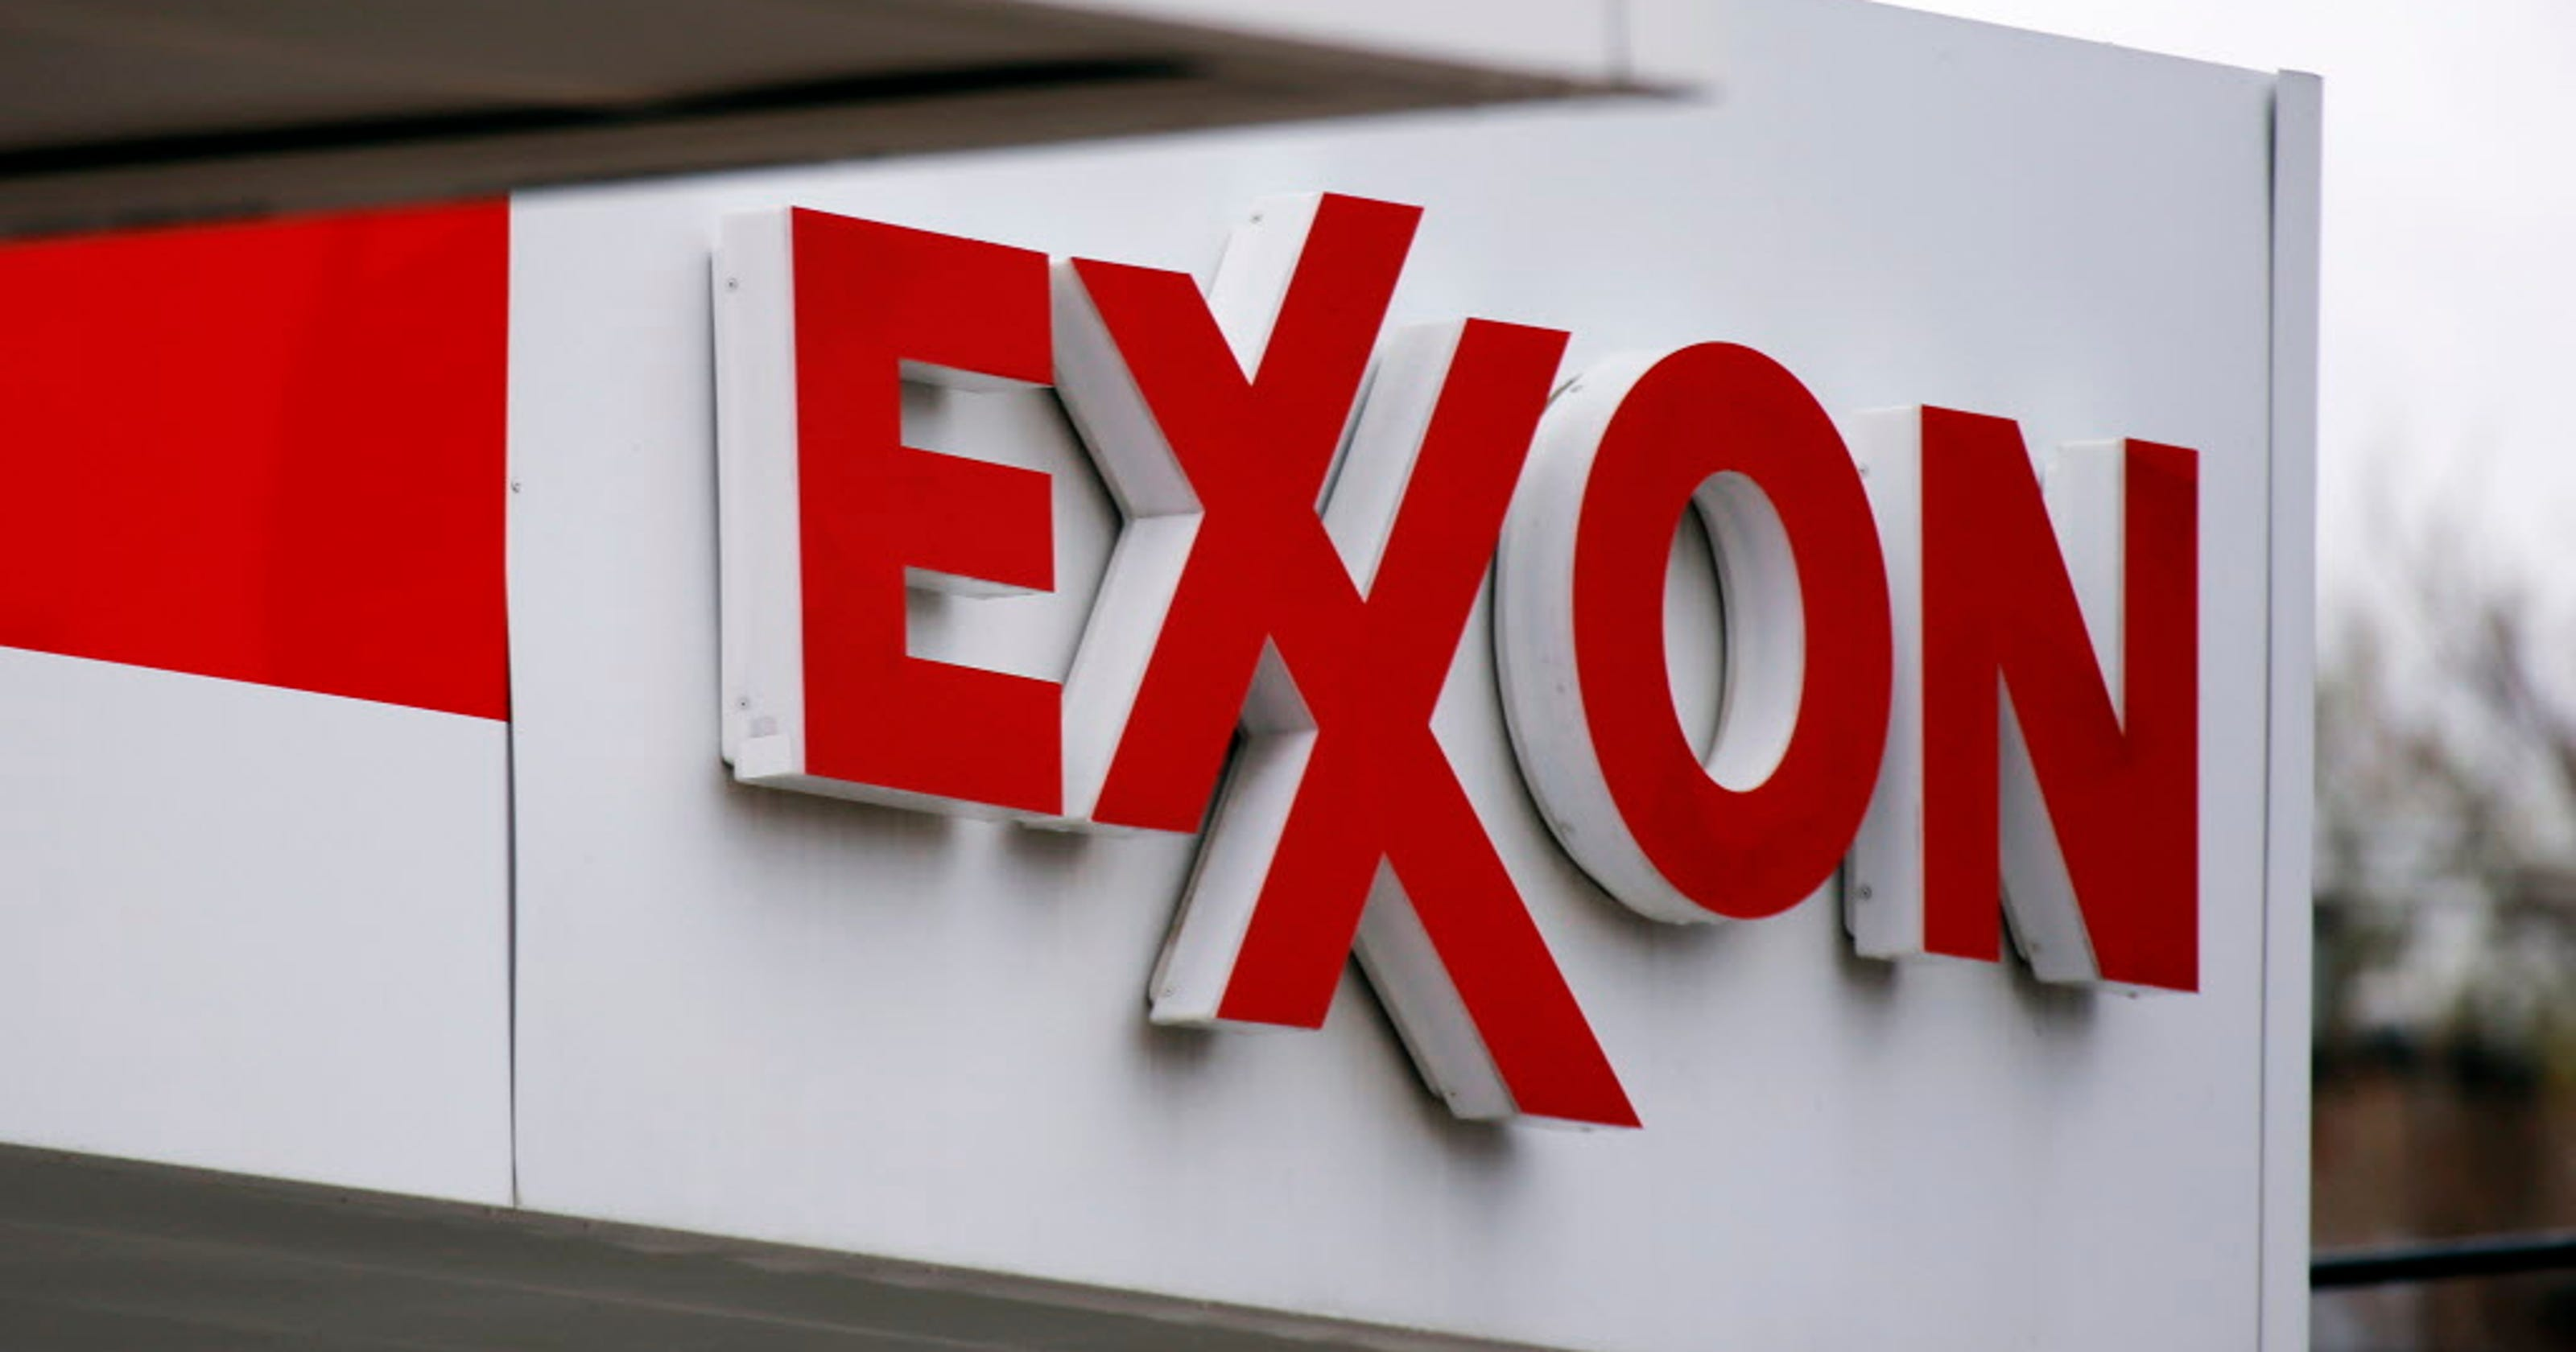 Ask Matt Is Exxonmobil A Good Investment